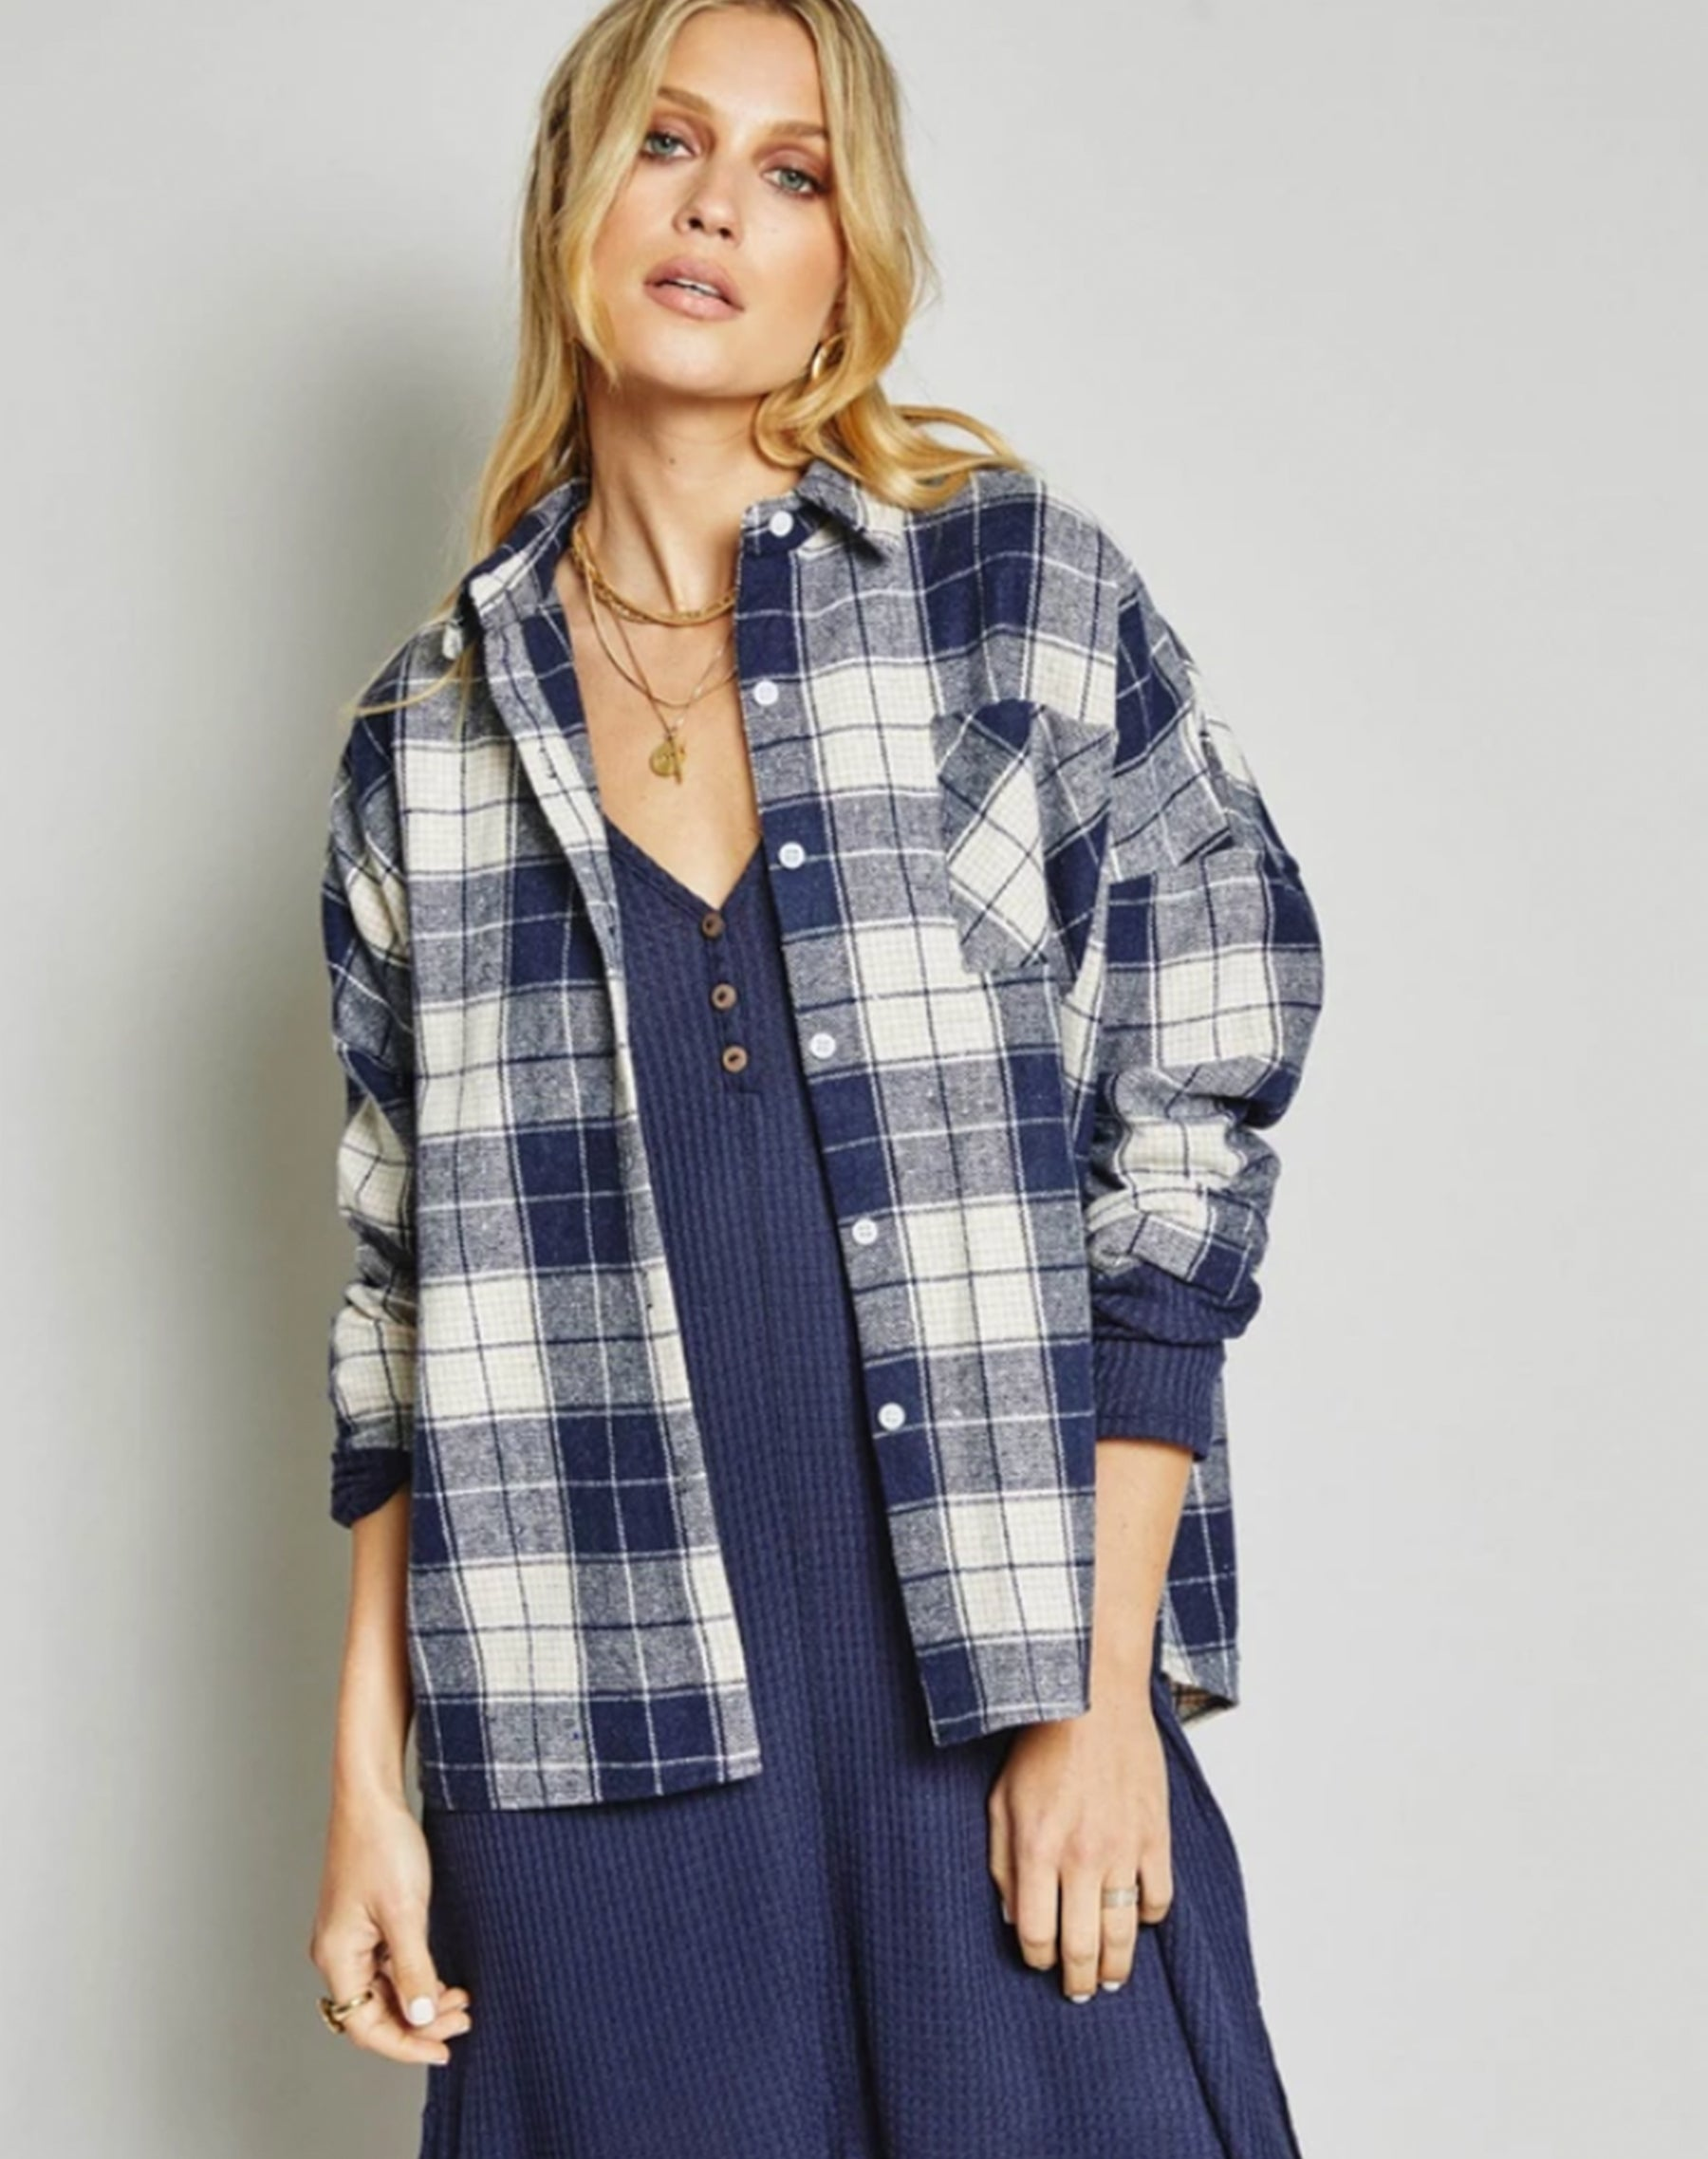 Photo of the Hitchhiker cardigan in plaid by Sage the Label.